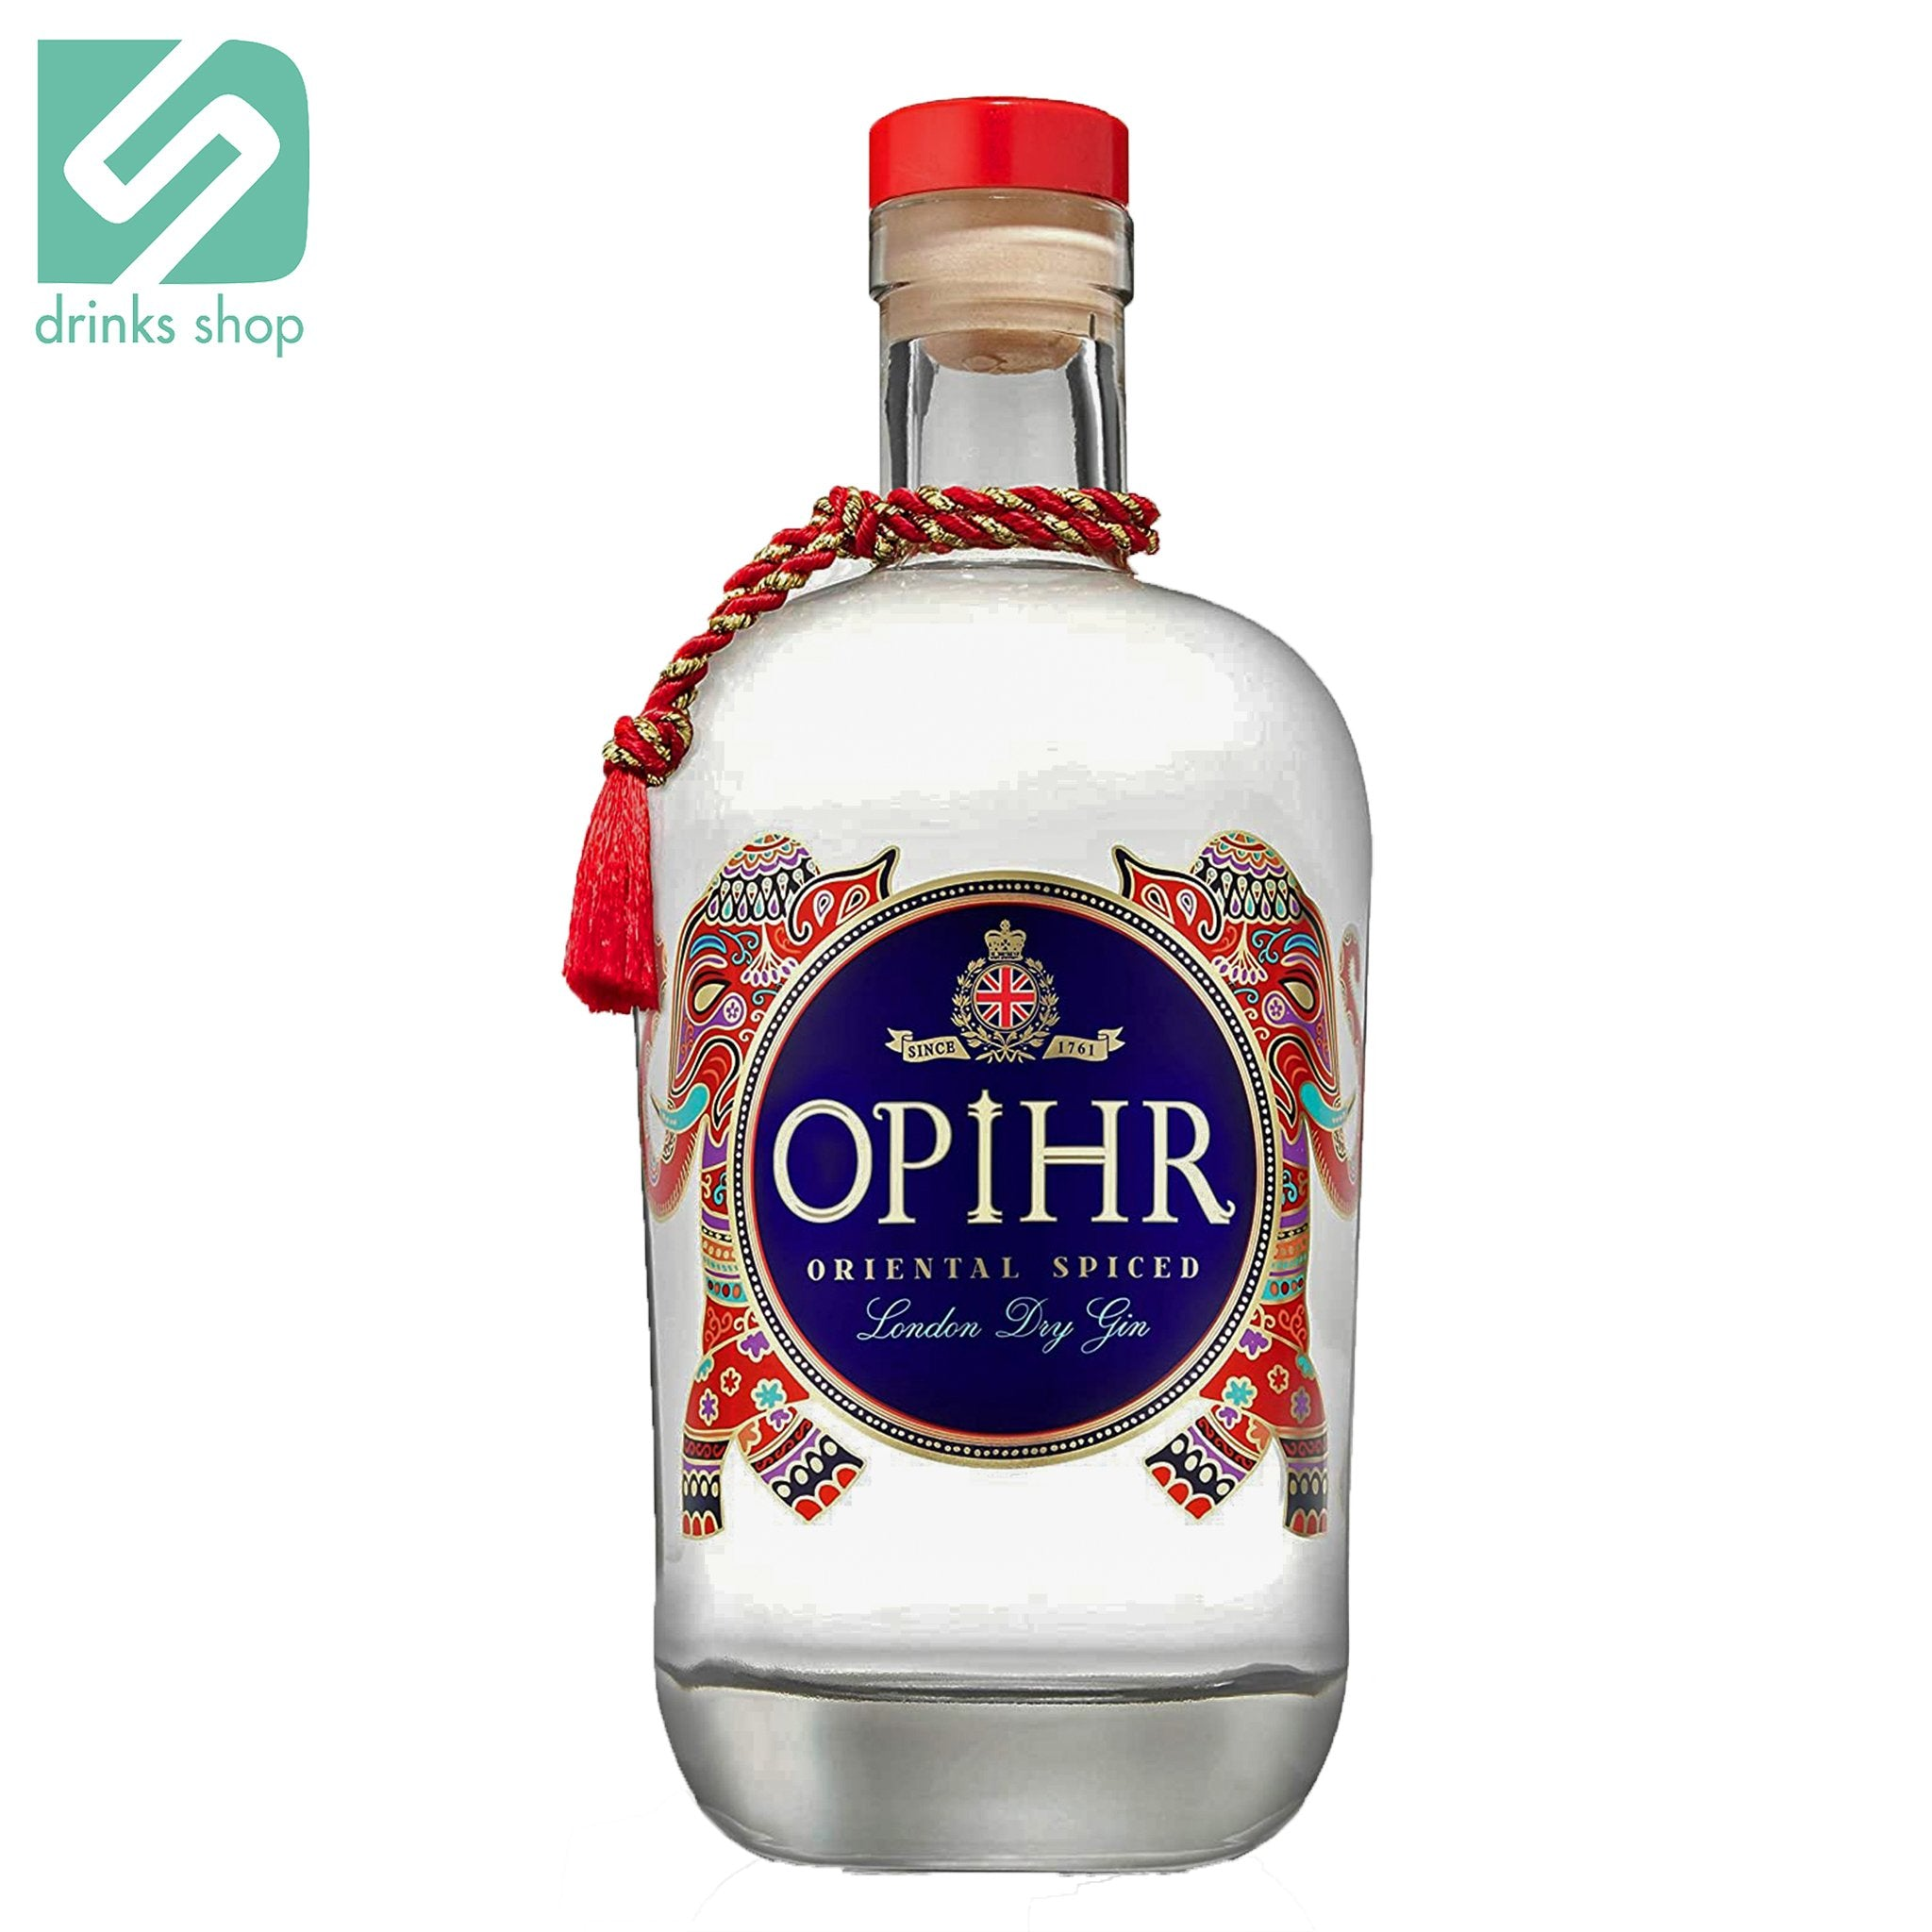 Opihr Oriental Spiced London Dry Gin 70cl, Gin - Image 1